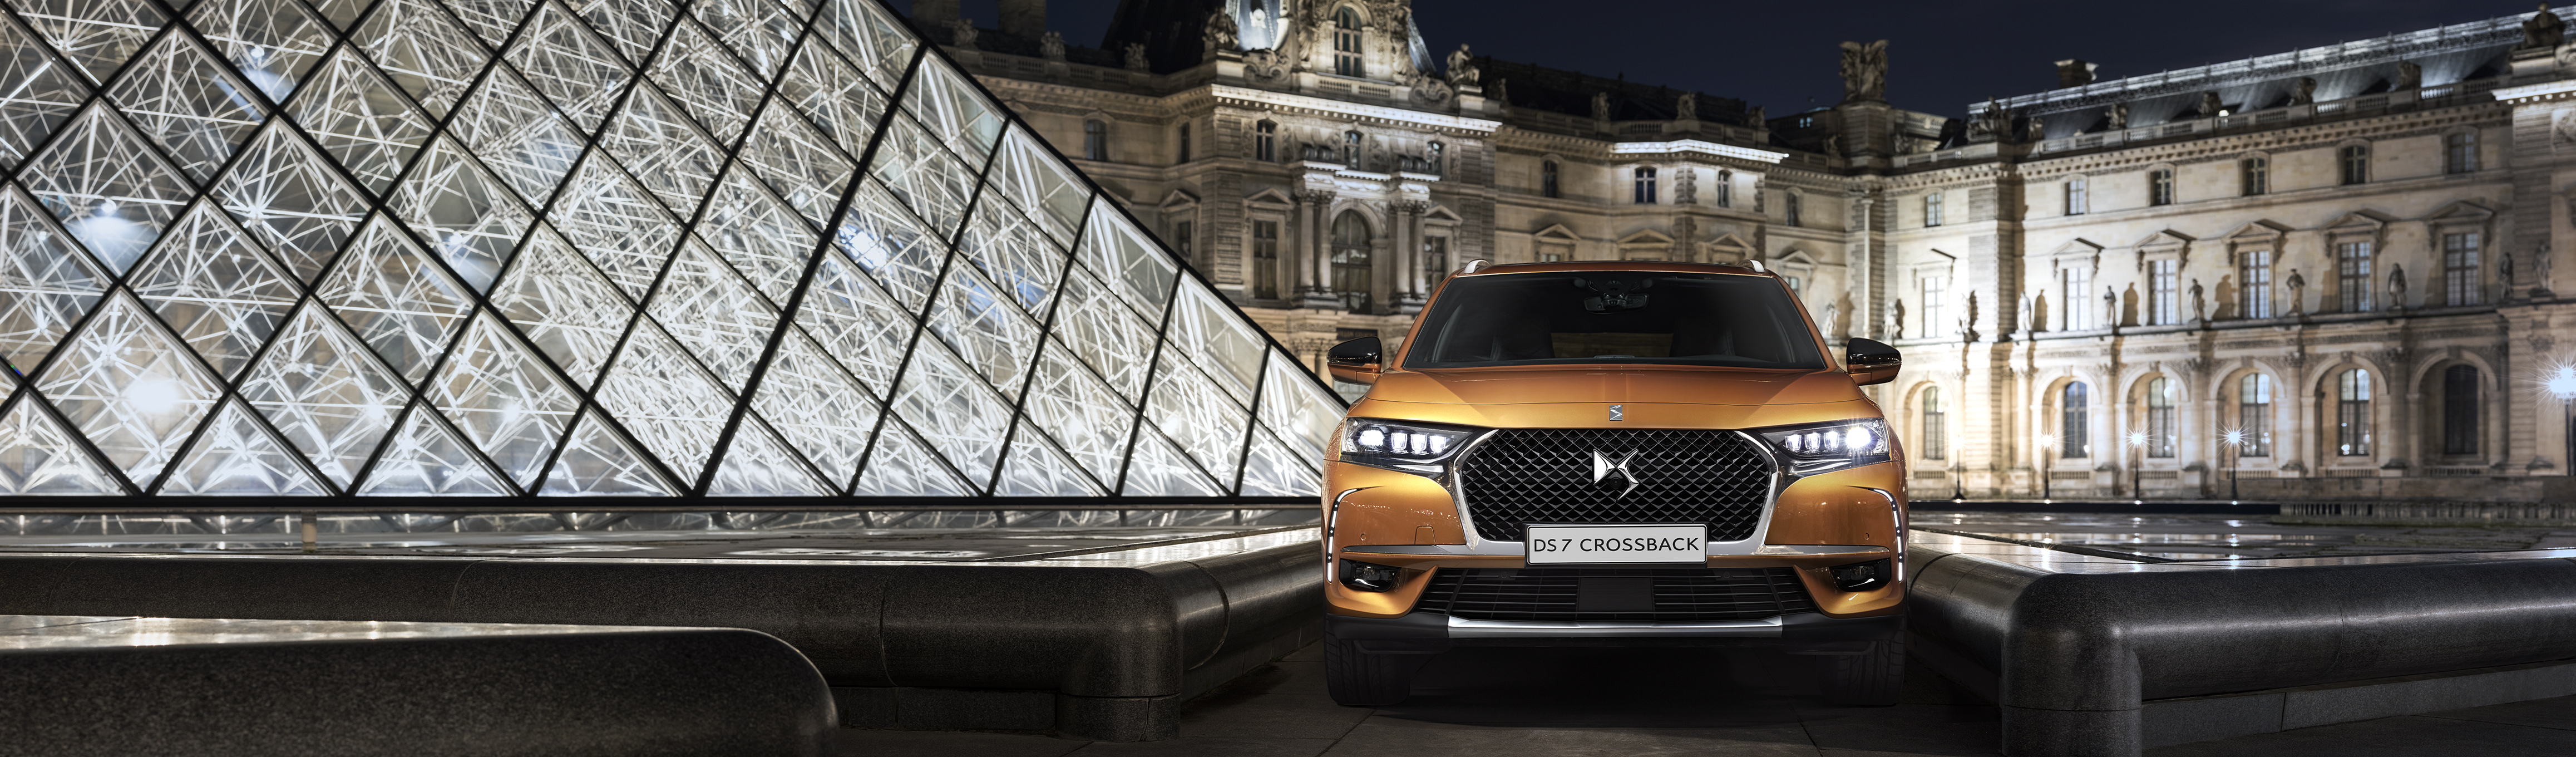 Bonjour DS7 Crossback: Ein Besuch in Paris mit DS Automobiles Cars Auto Car Lifestyle Automotive WorldPremiere AllNew SUV